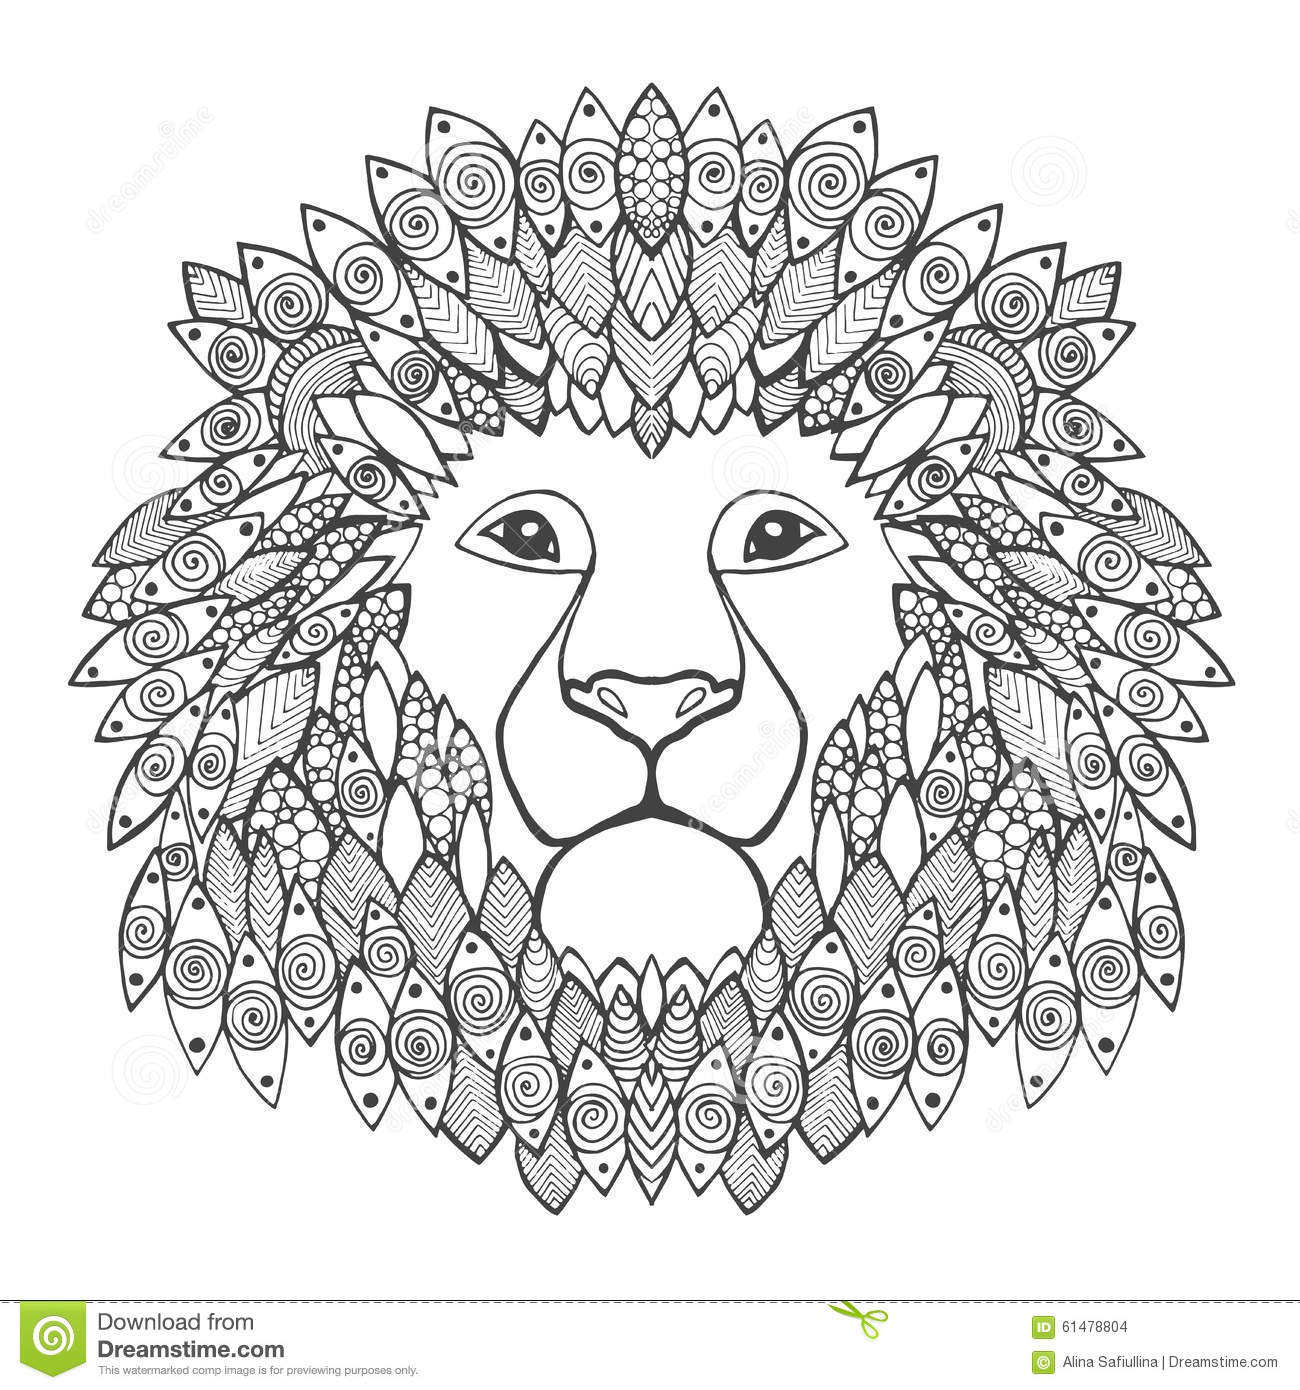 Lion Head Coloring Pages For Adults. Lion head  stock vector Illustration of lion drawn 61478804